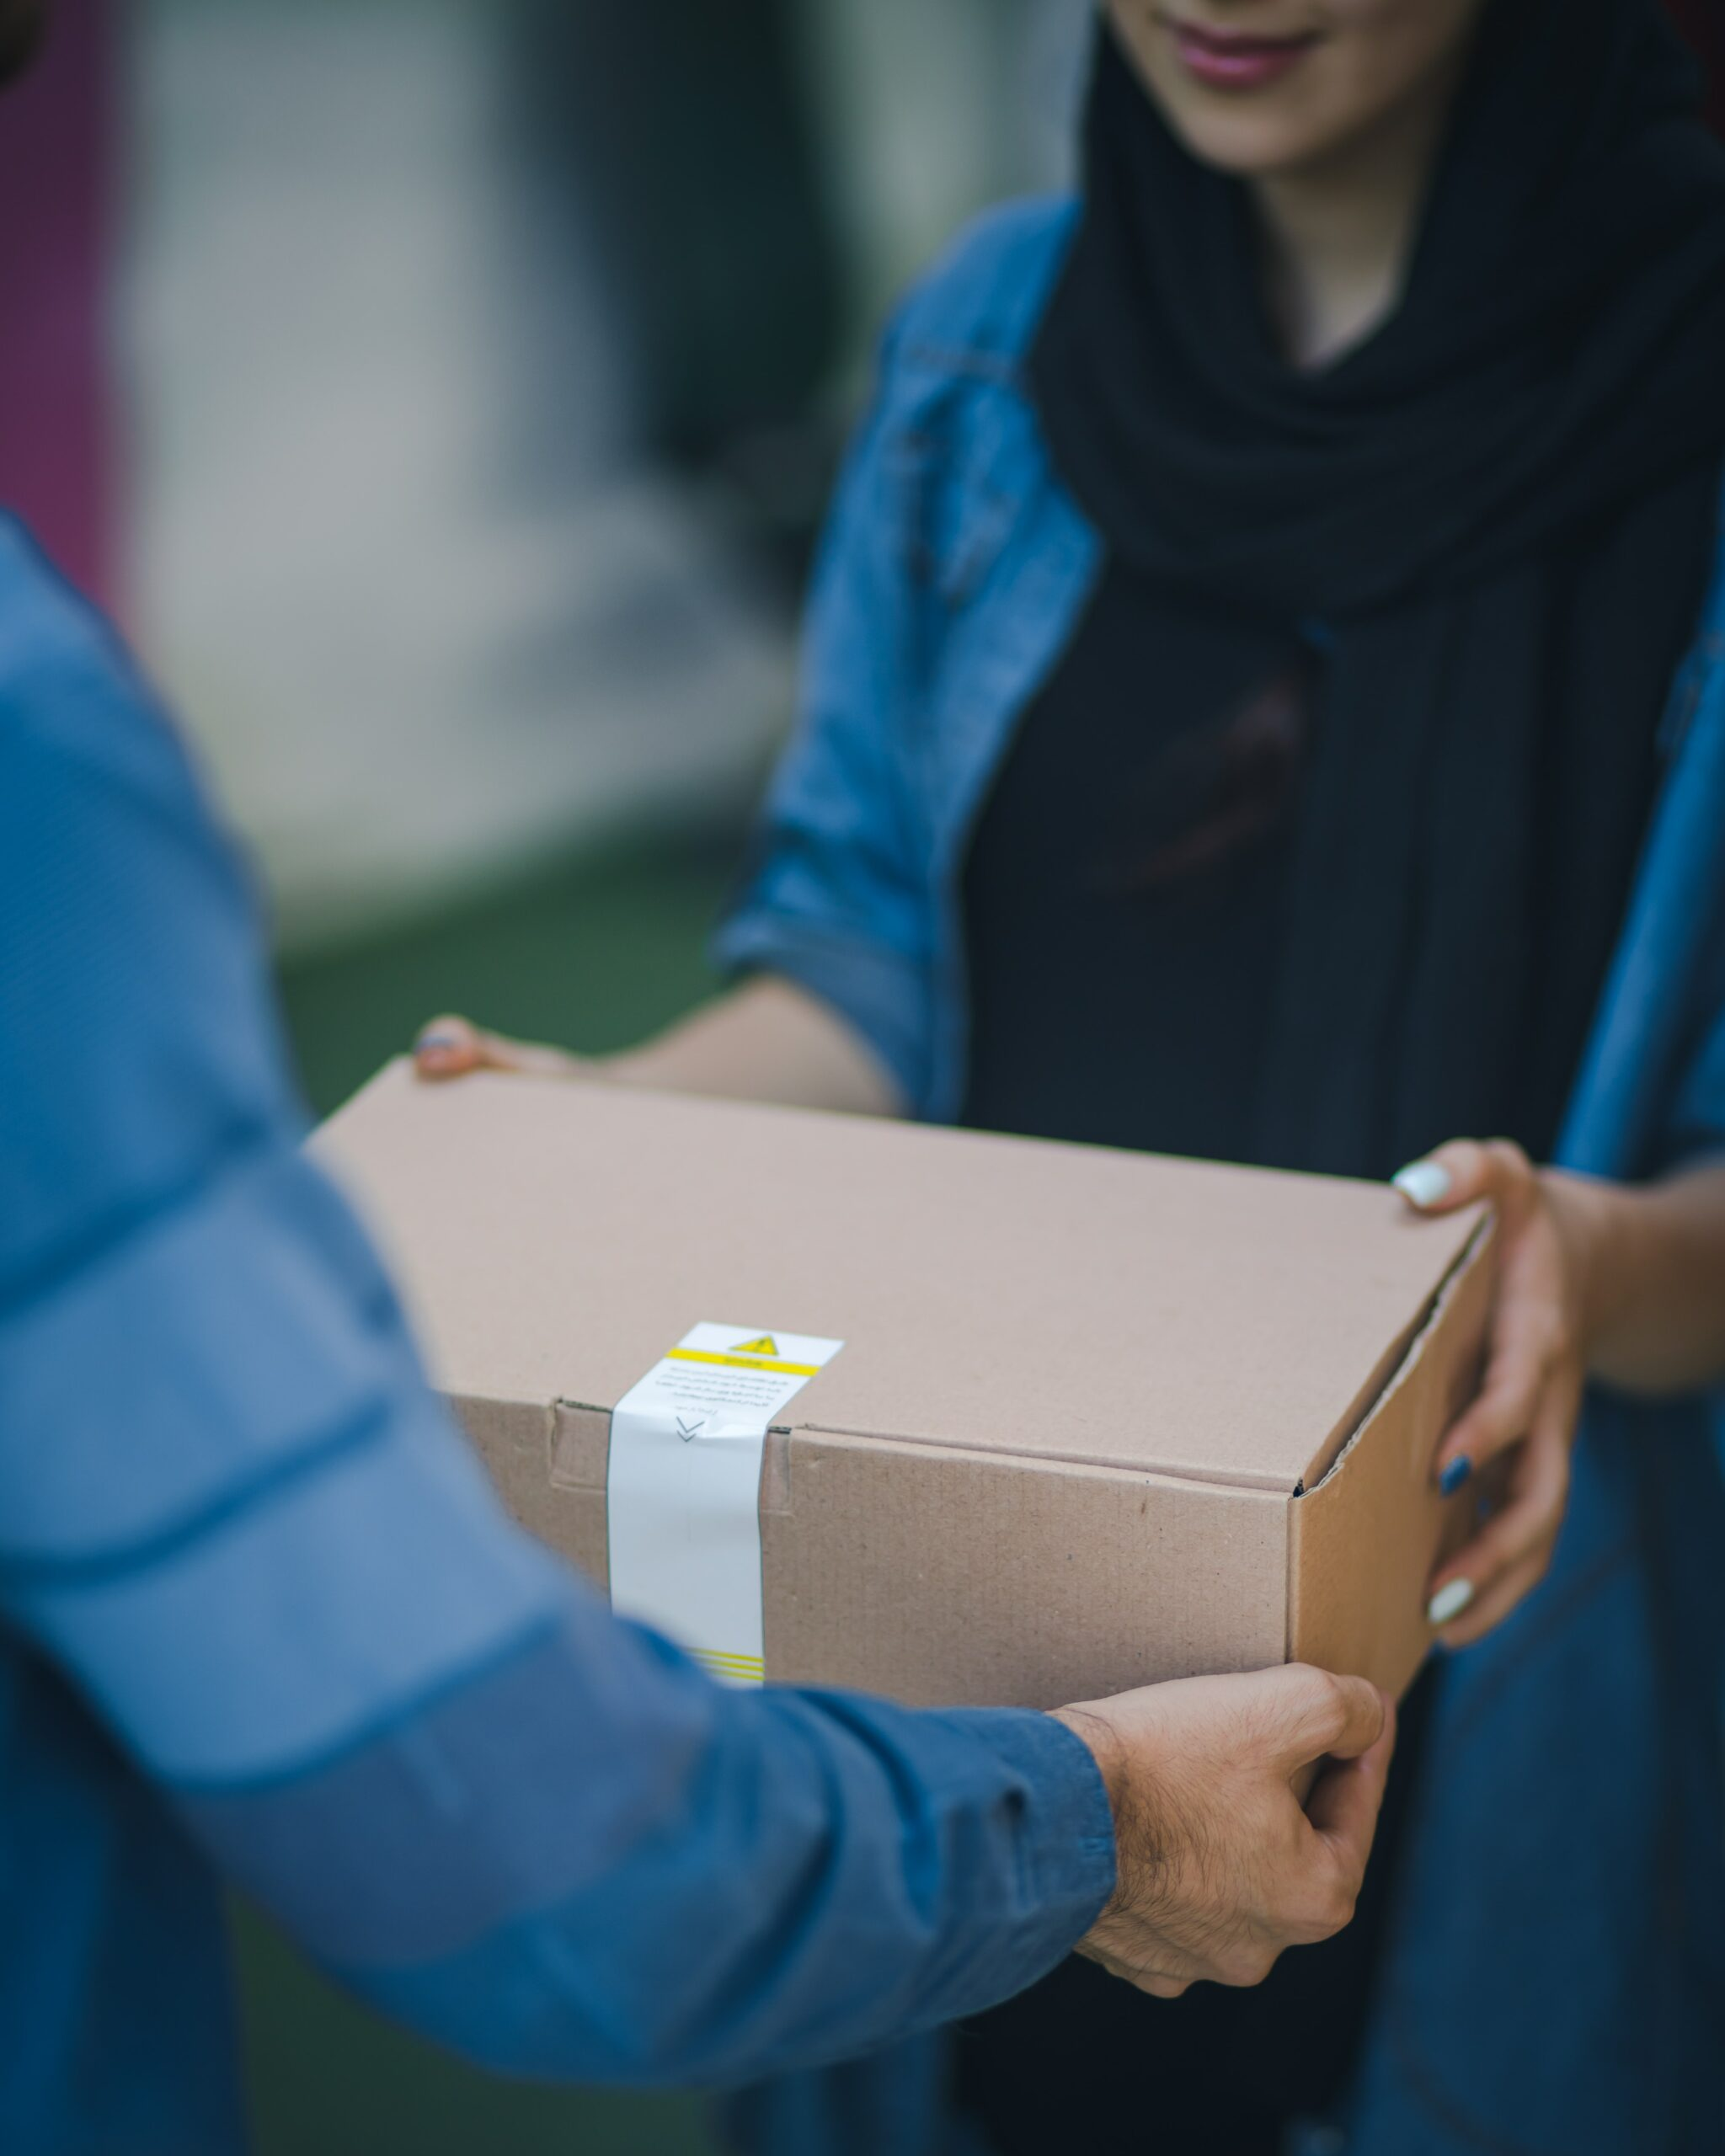 A woman passing a box to another person.